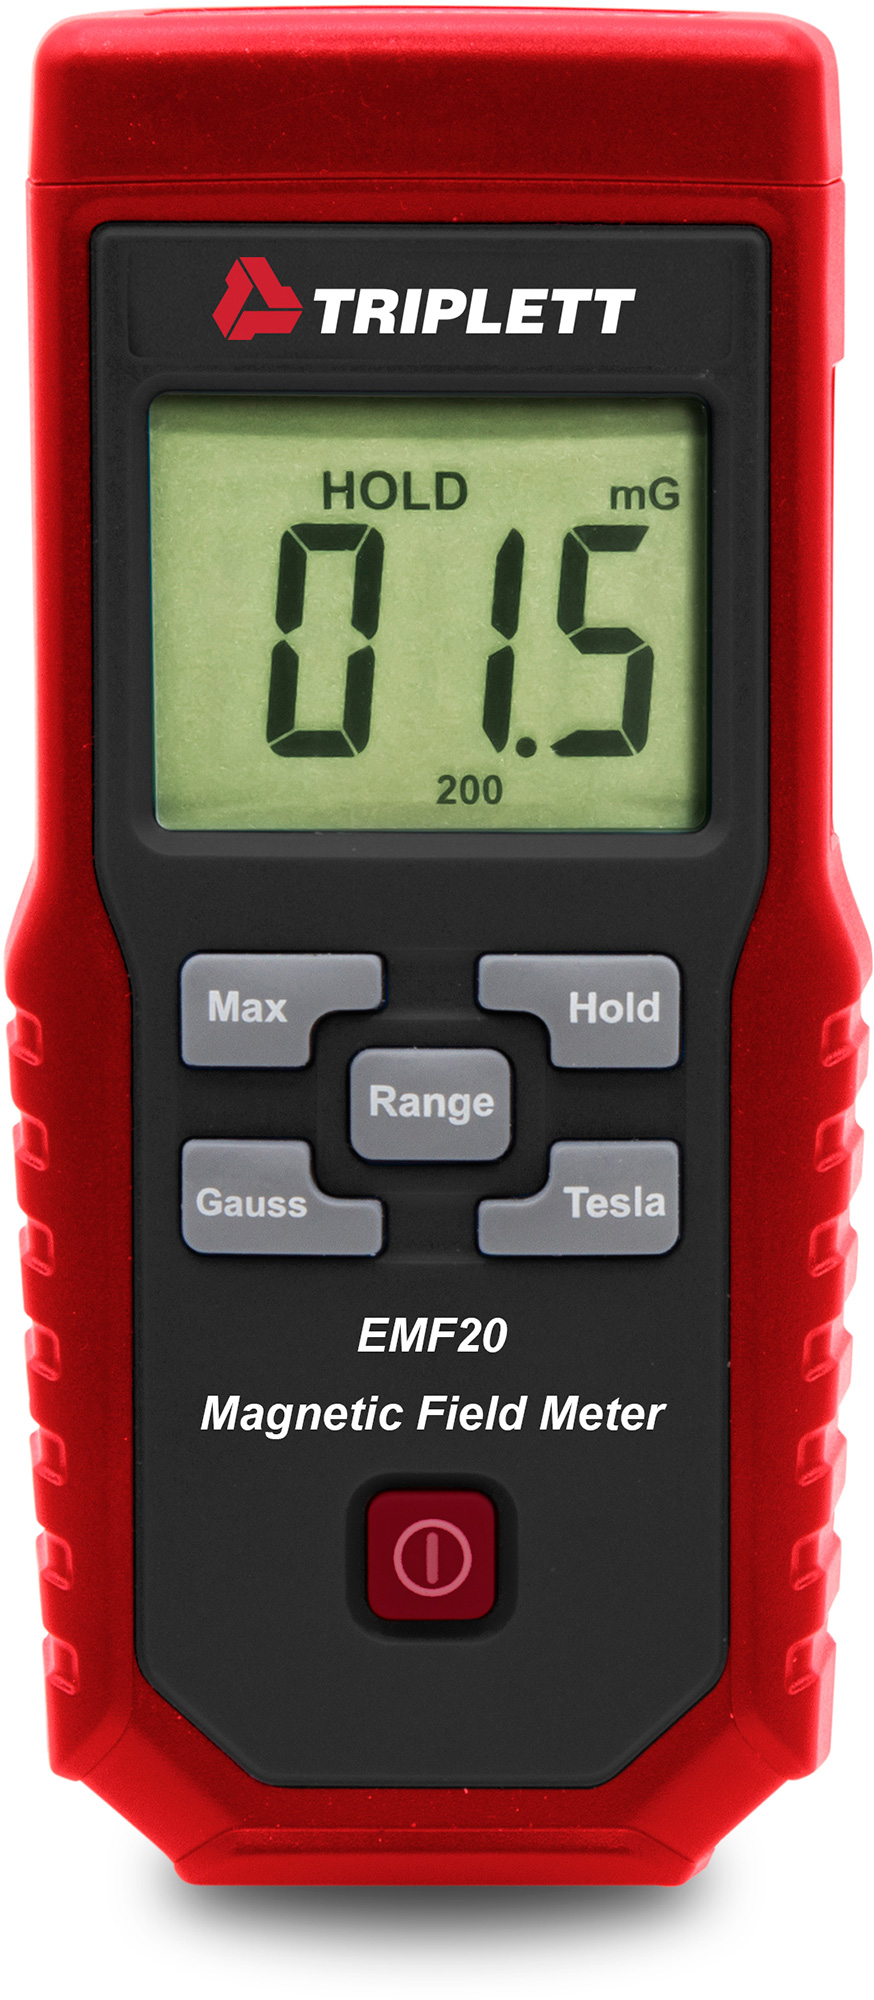 Triplett EMF20 Magnetic Field Detector - Measures Electro-Magnetic Field Of ELF from 30 to 300Hz TRIPL-EMF20